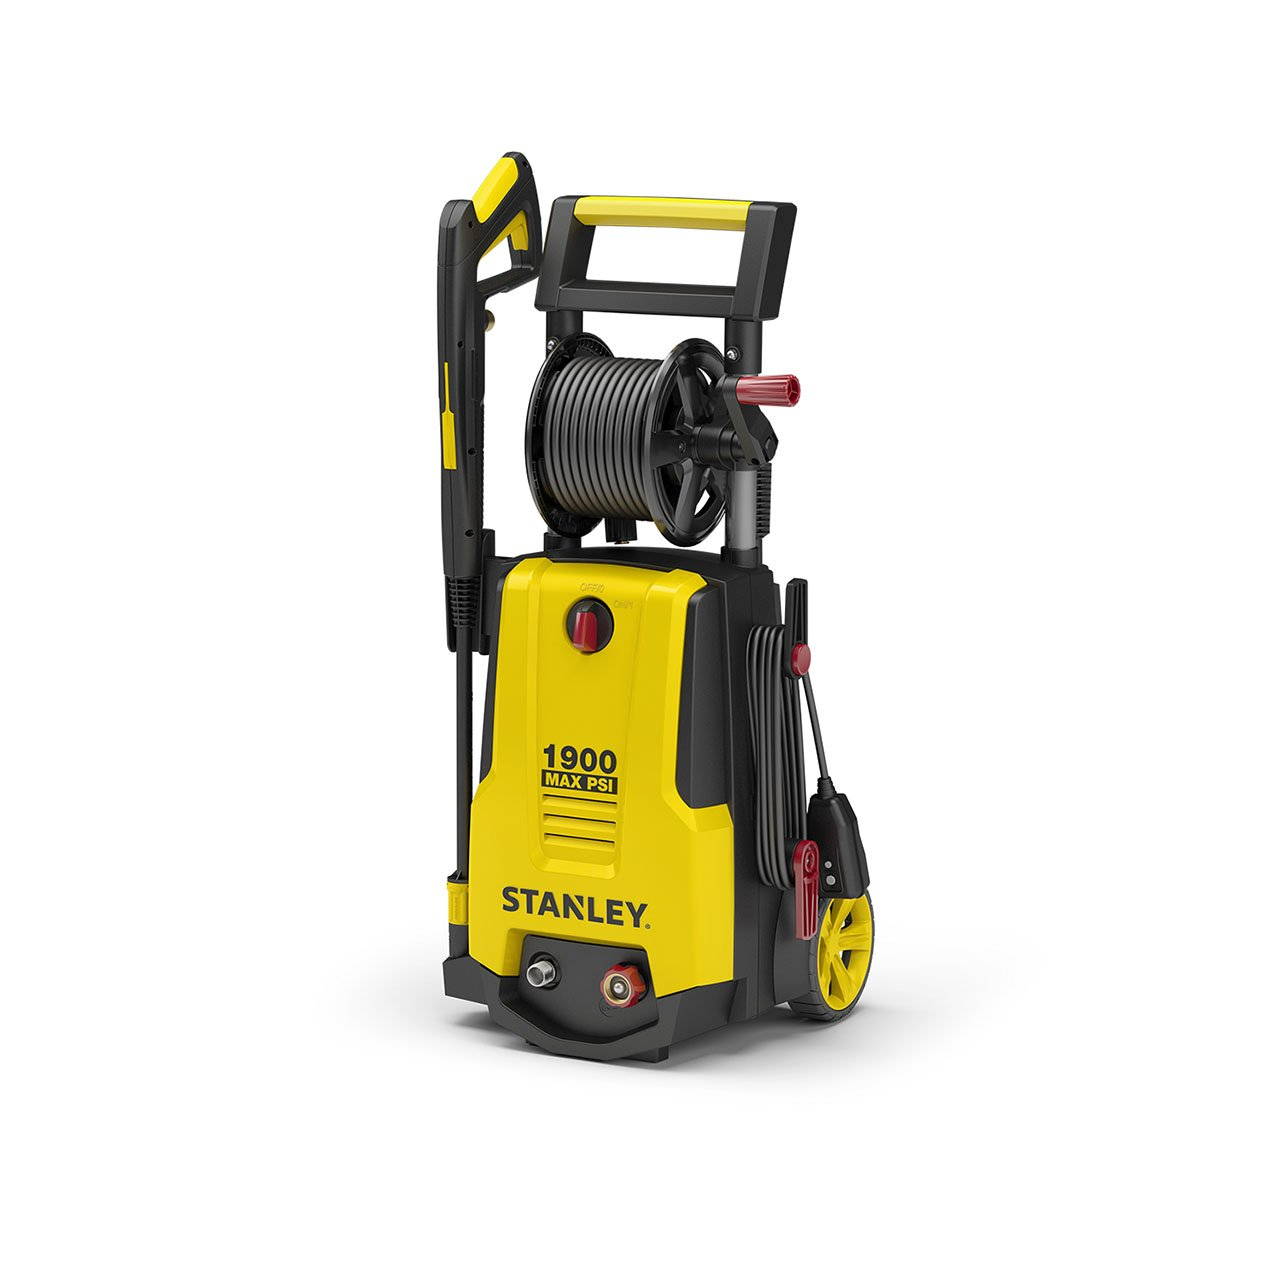 Stanley SHP1900 Electric Power Washer, Medium Yellow